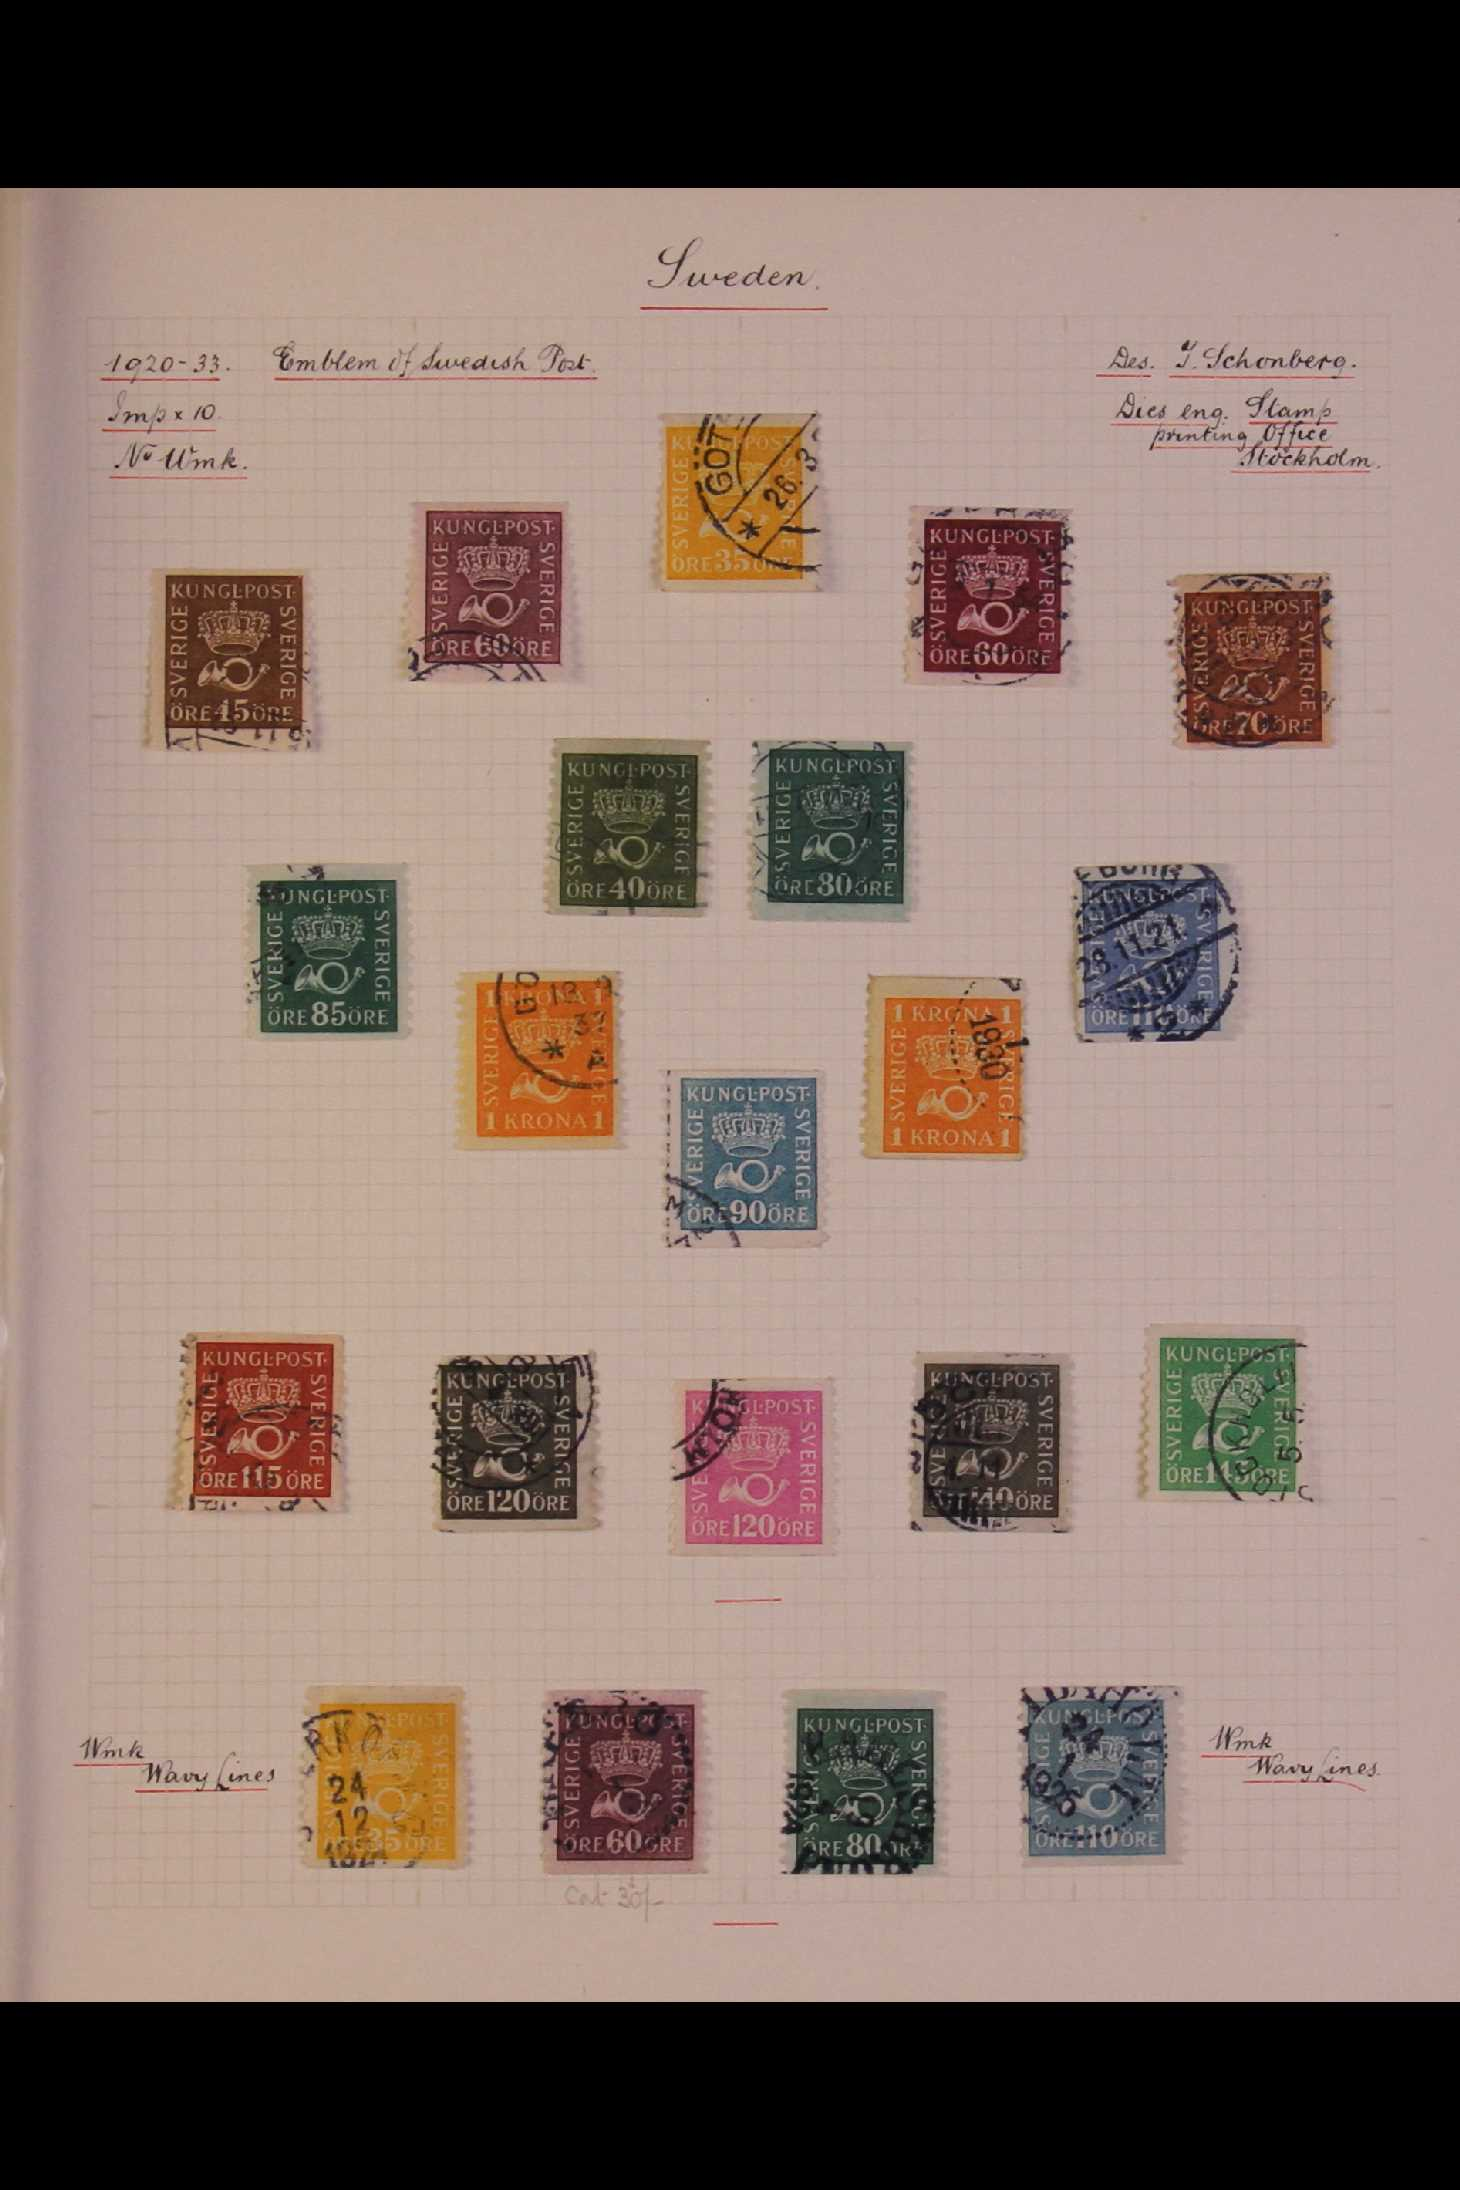 SWEDEN 1903-1966 USED COLLECTION incl. 1903 5k GPO, 1910-19 wmk Crown set, 1916 Landstorm surcharges - Image 6 of 12